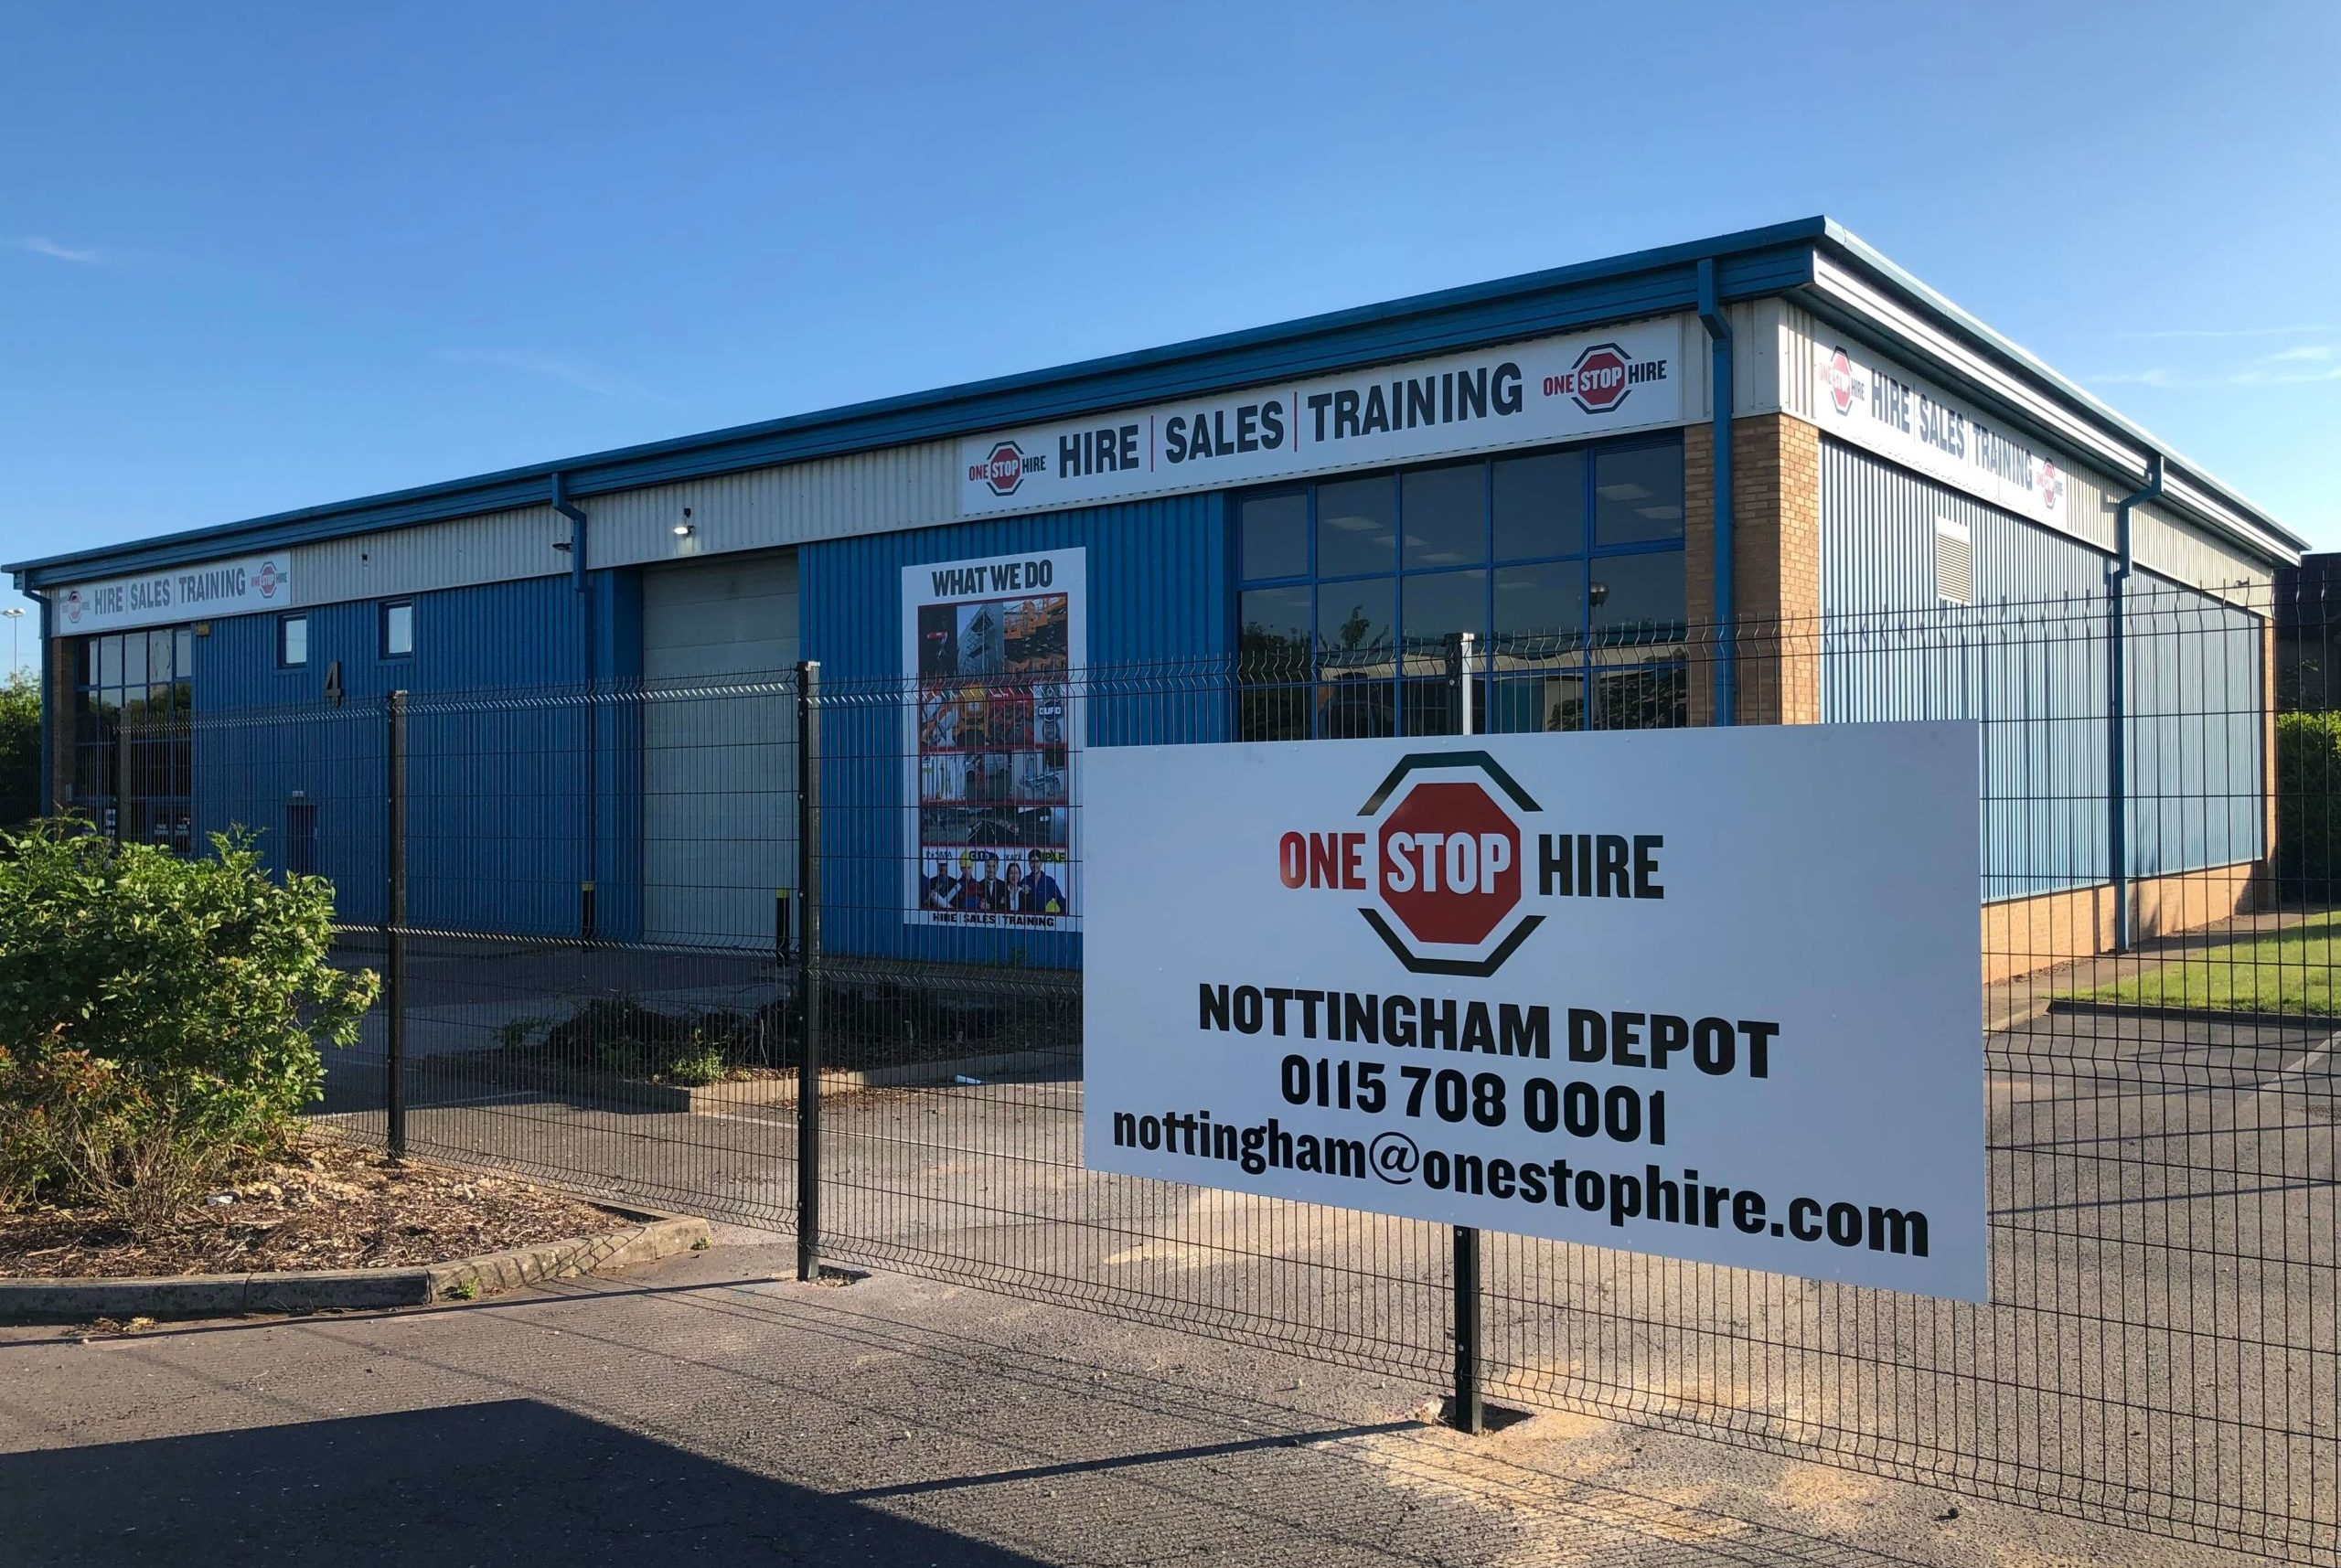 NEW Depot now open in Nottingham covering the East Midlands area including Derby, Leicester & Burton